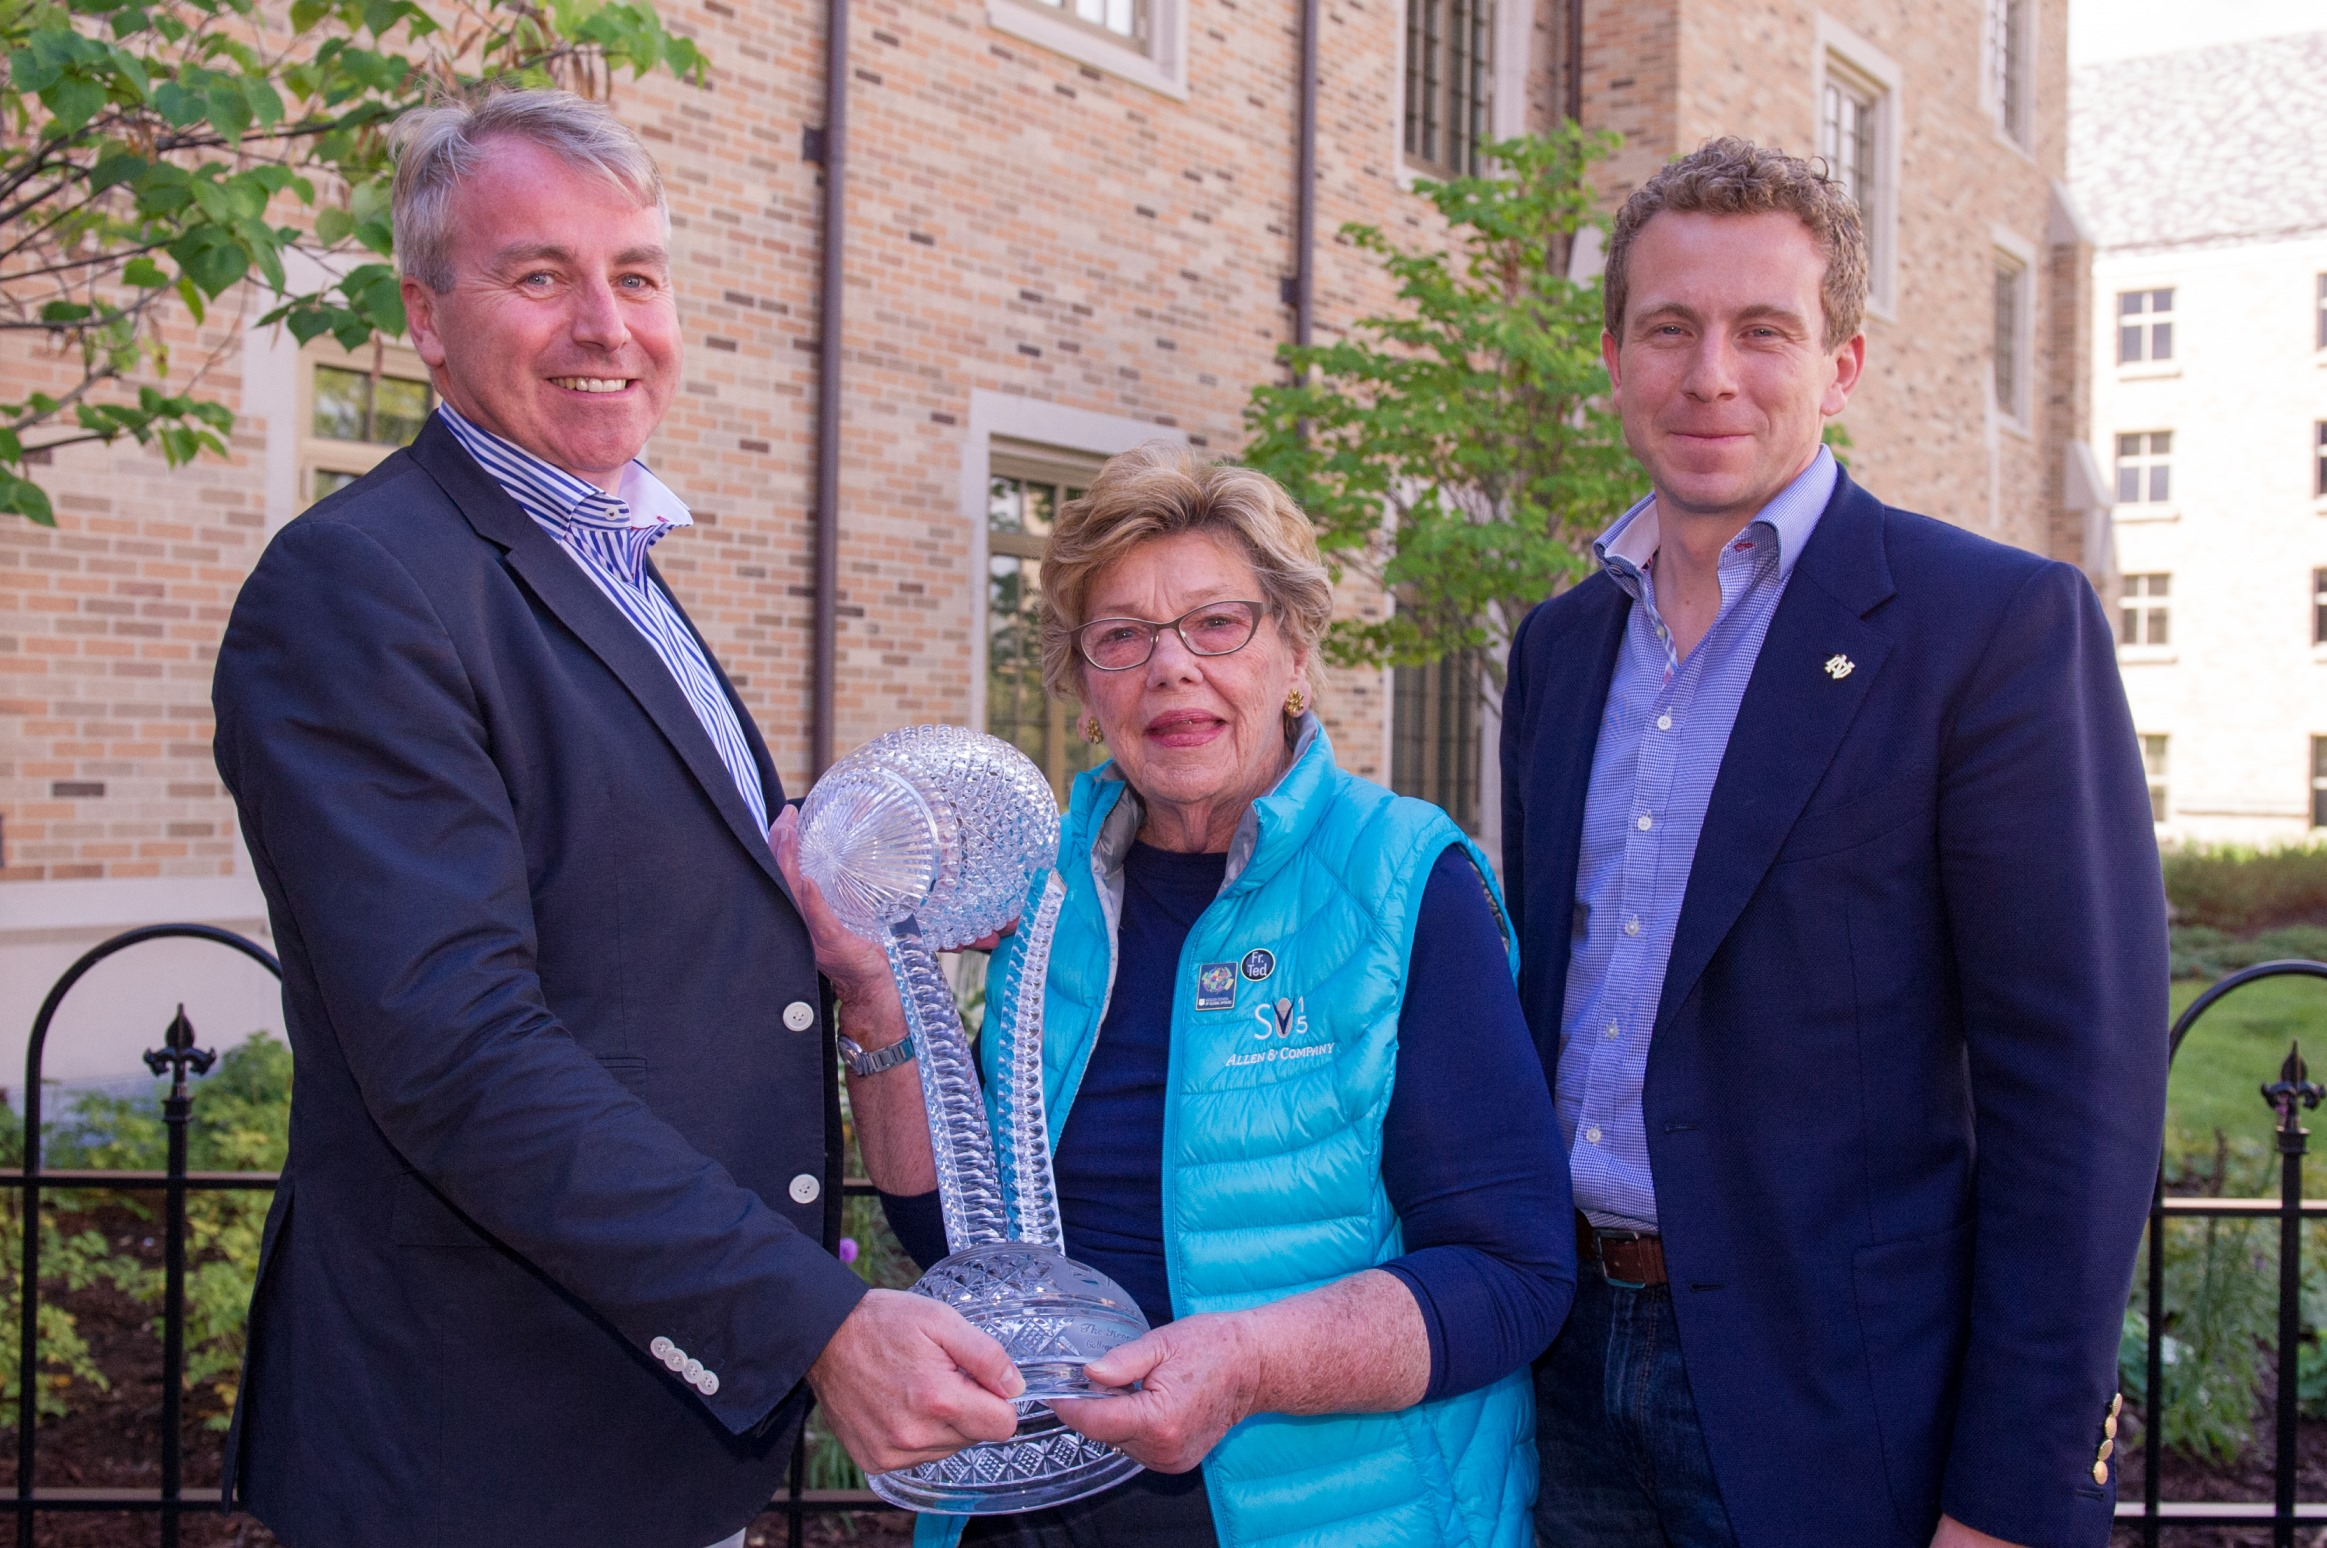 Pictured at the presentation of the Keough-Naughton Trophy at Boston College were: Neil and Fergal Naughton with their mother Mickie Keough, the wife of the late Don Keough.